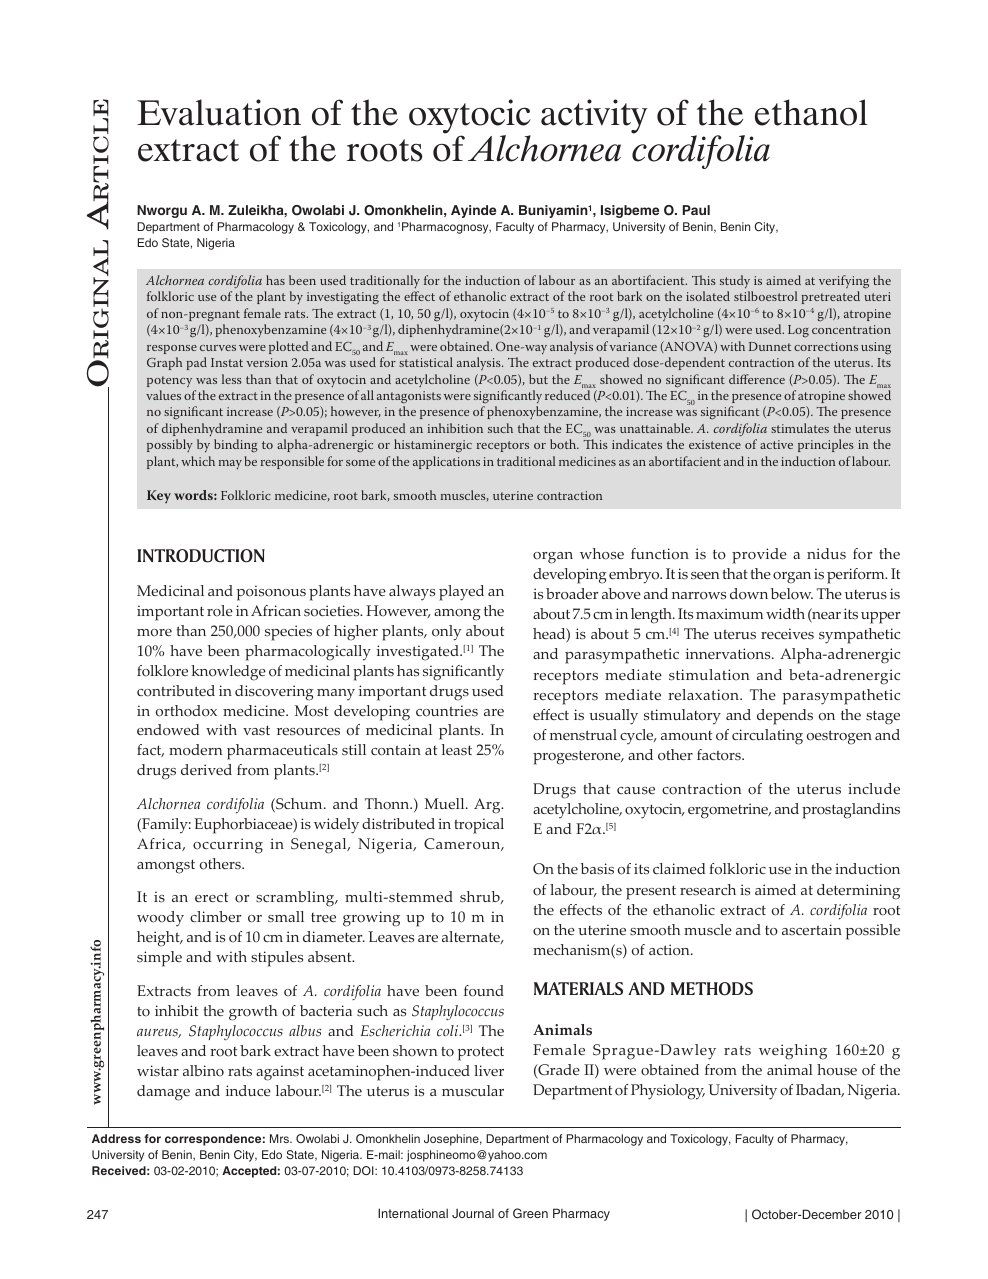 Evaluation of the oxytocic activity of the ethanol extract